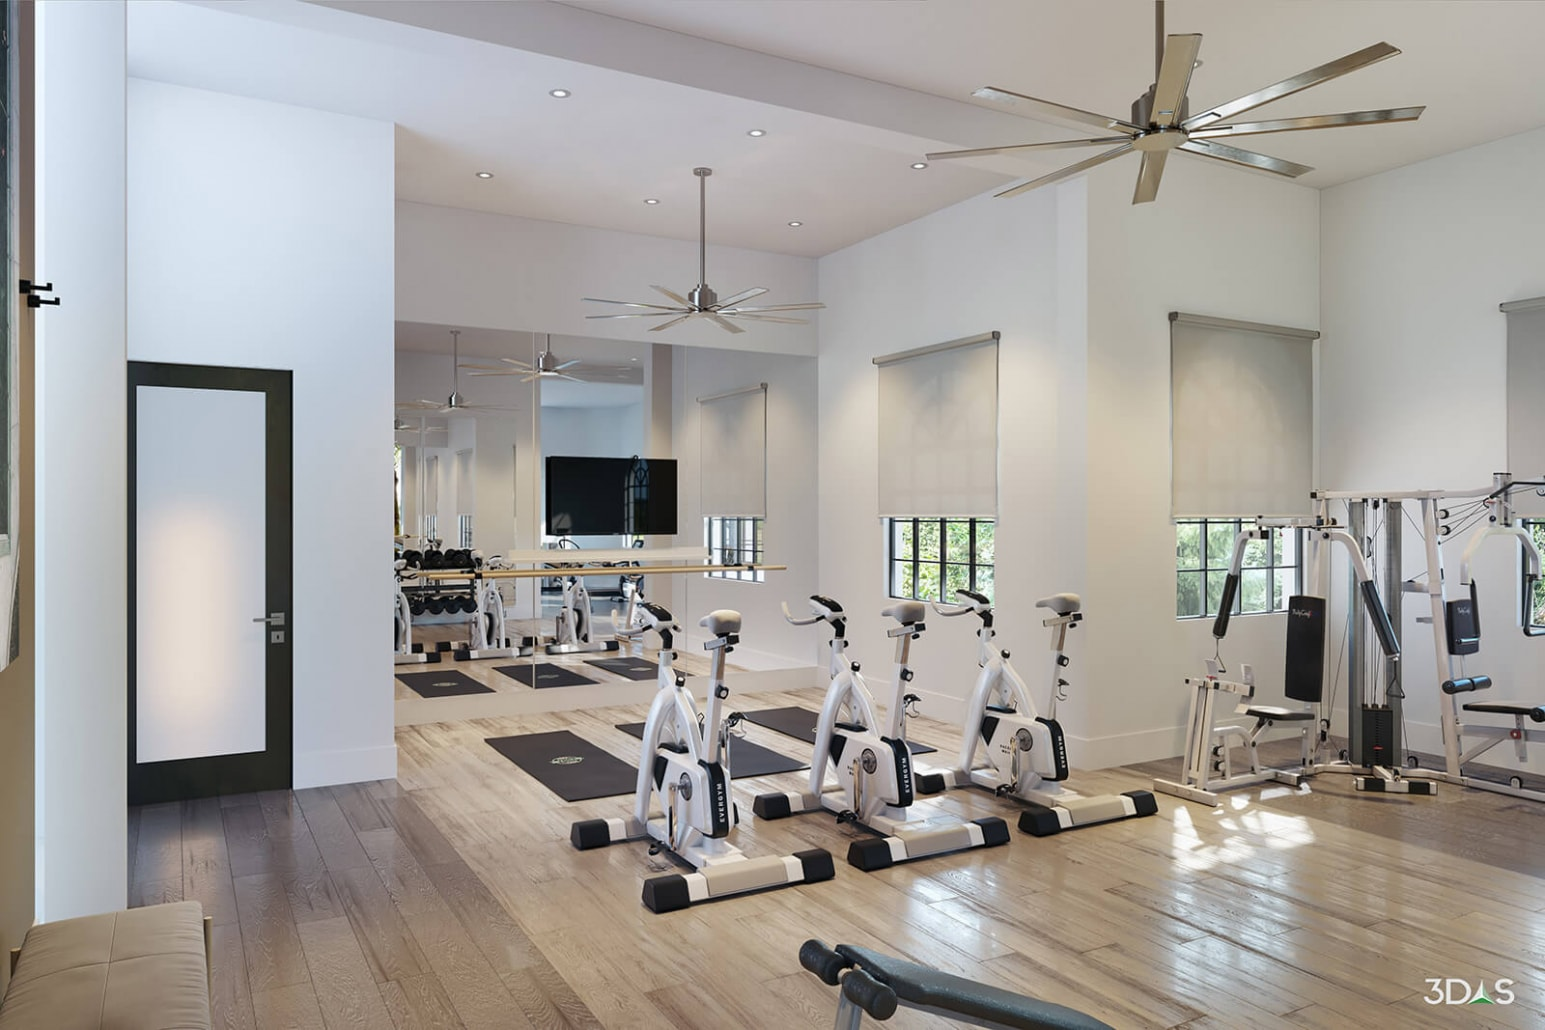 Fitness / Gym 3D Rendering. Avalia Townhouse Style Apartments are Located in Boca Raton, Florida